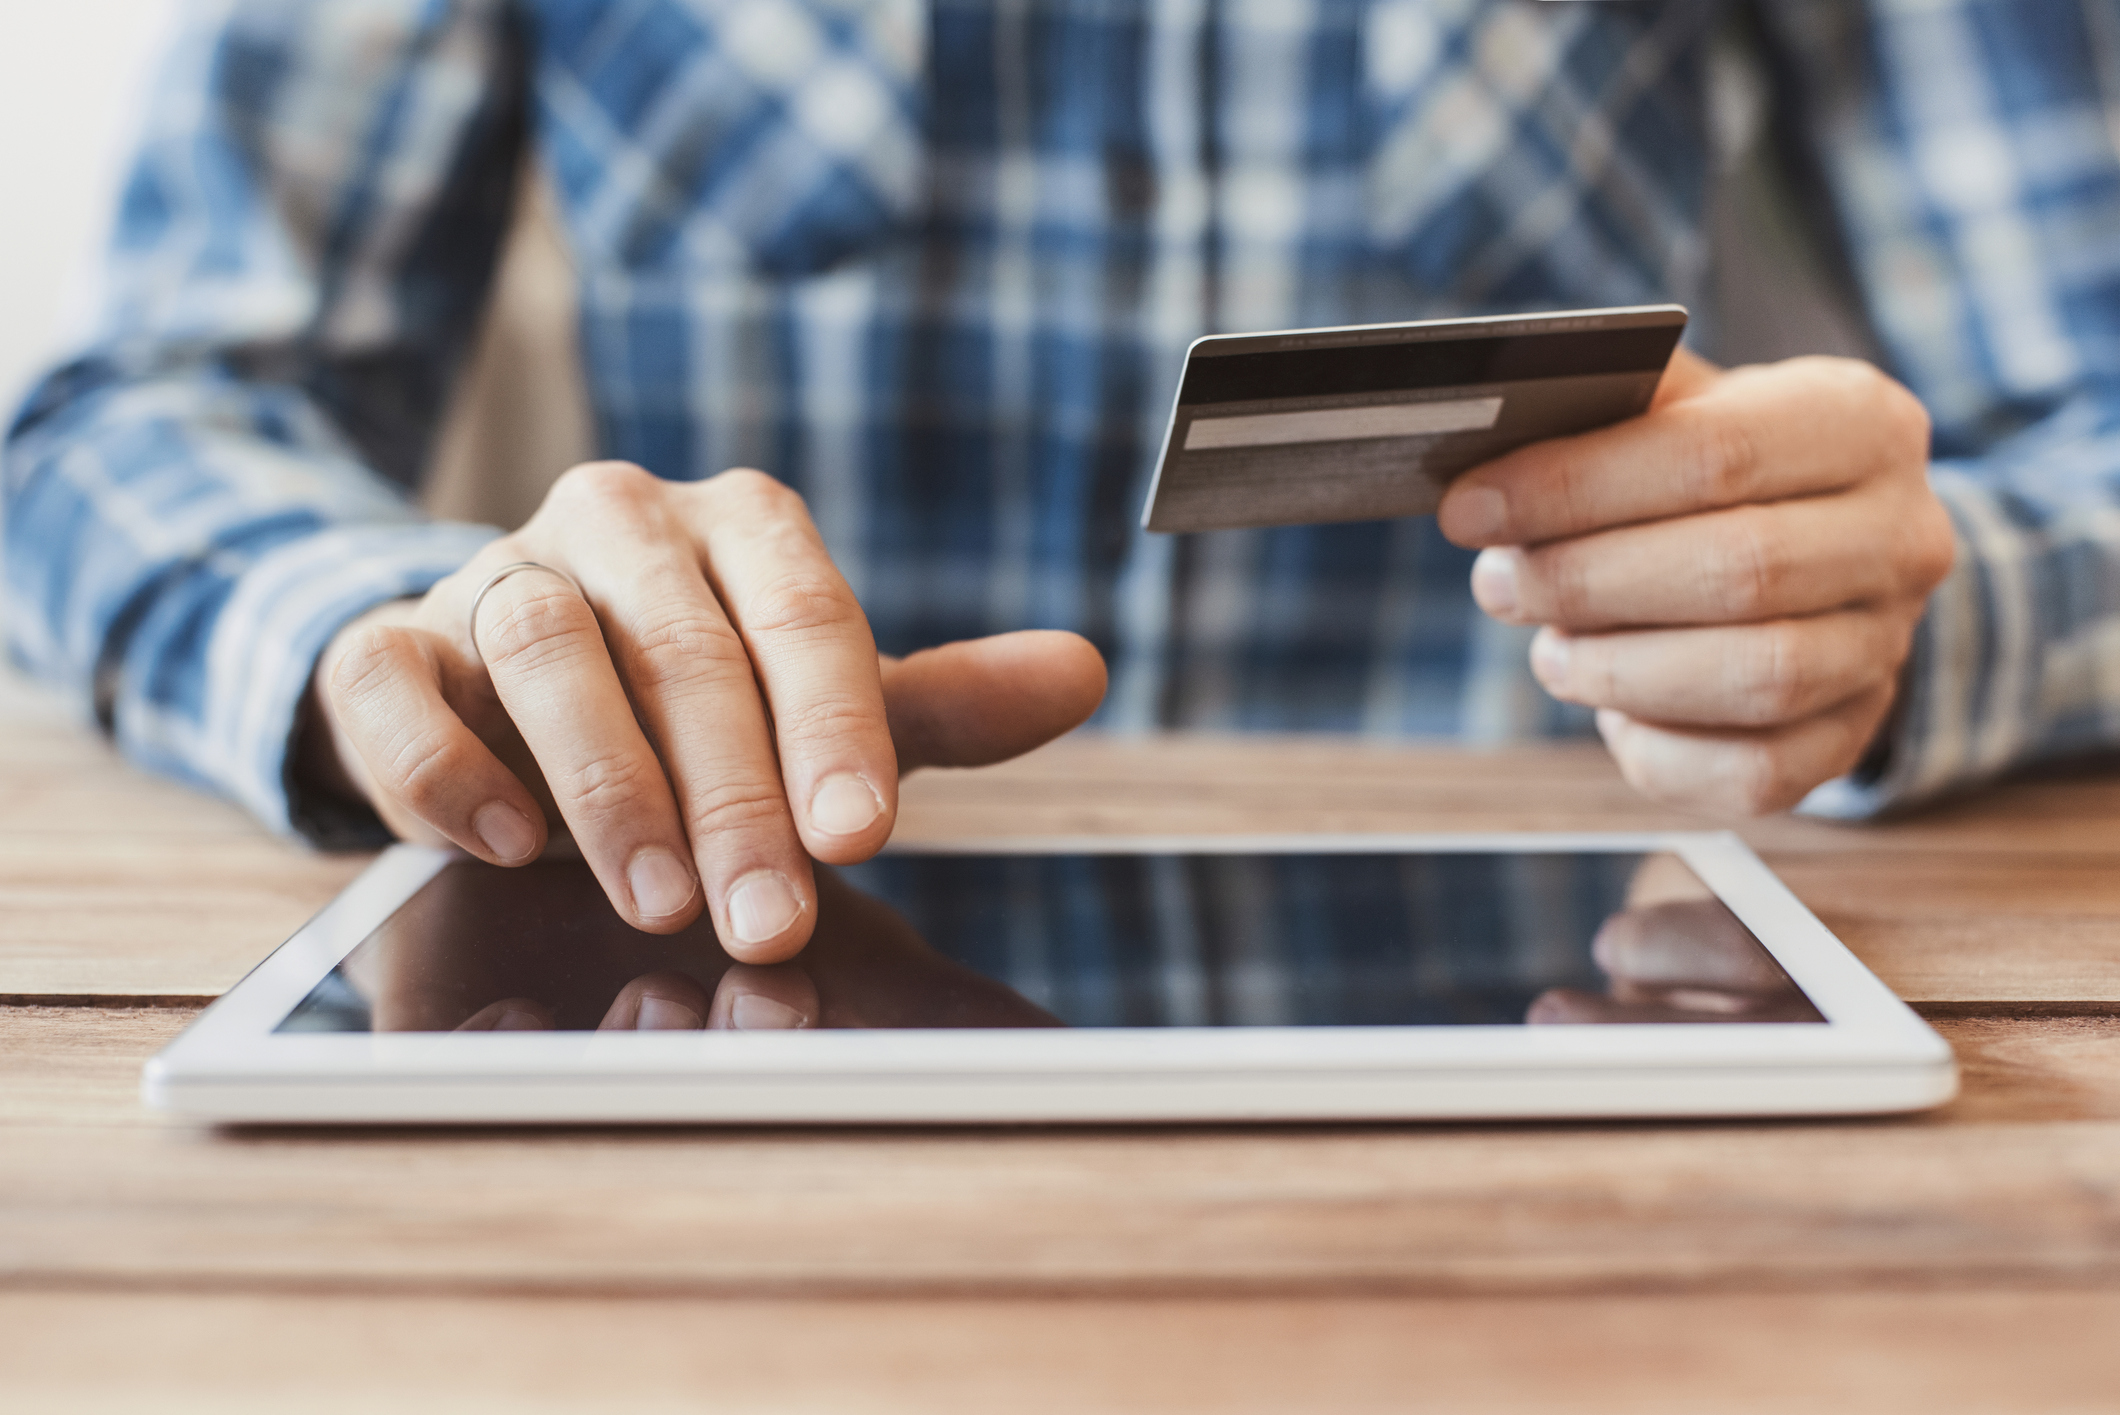 Man shopping online with digital tablet and credit card